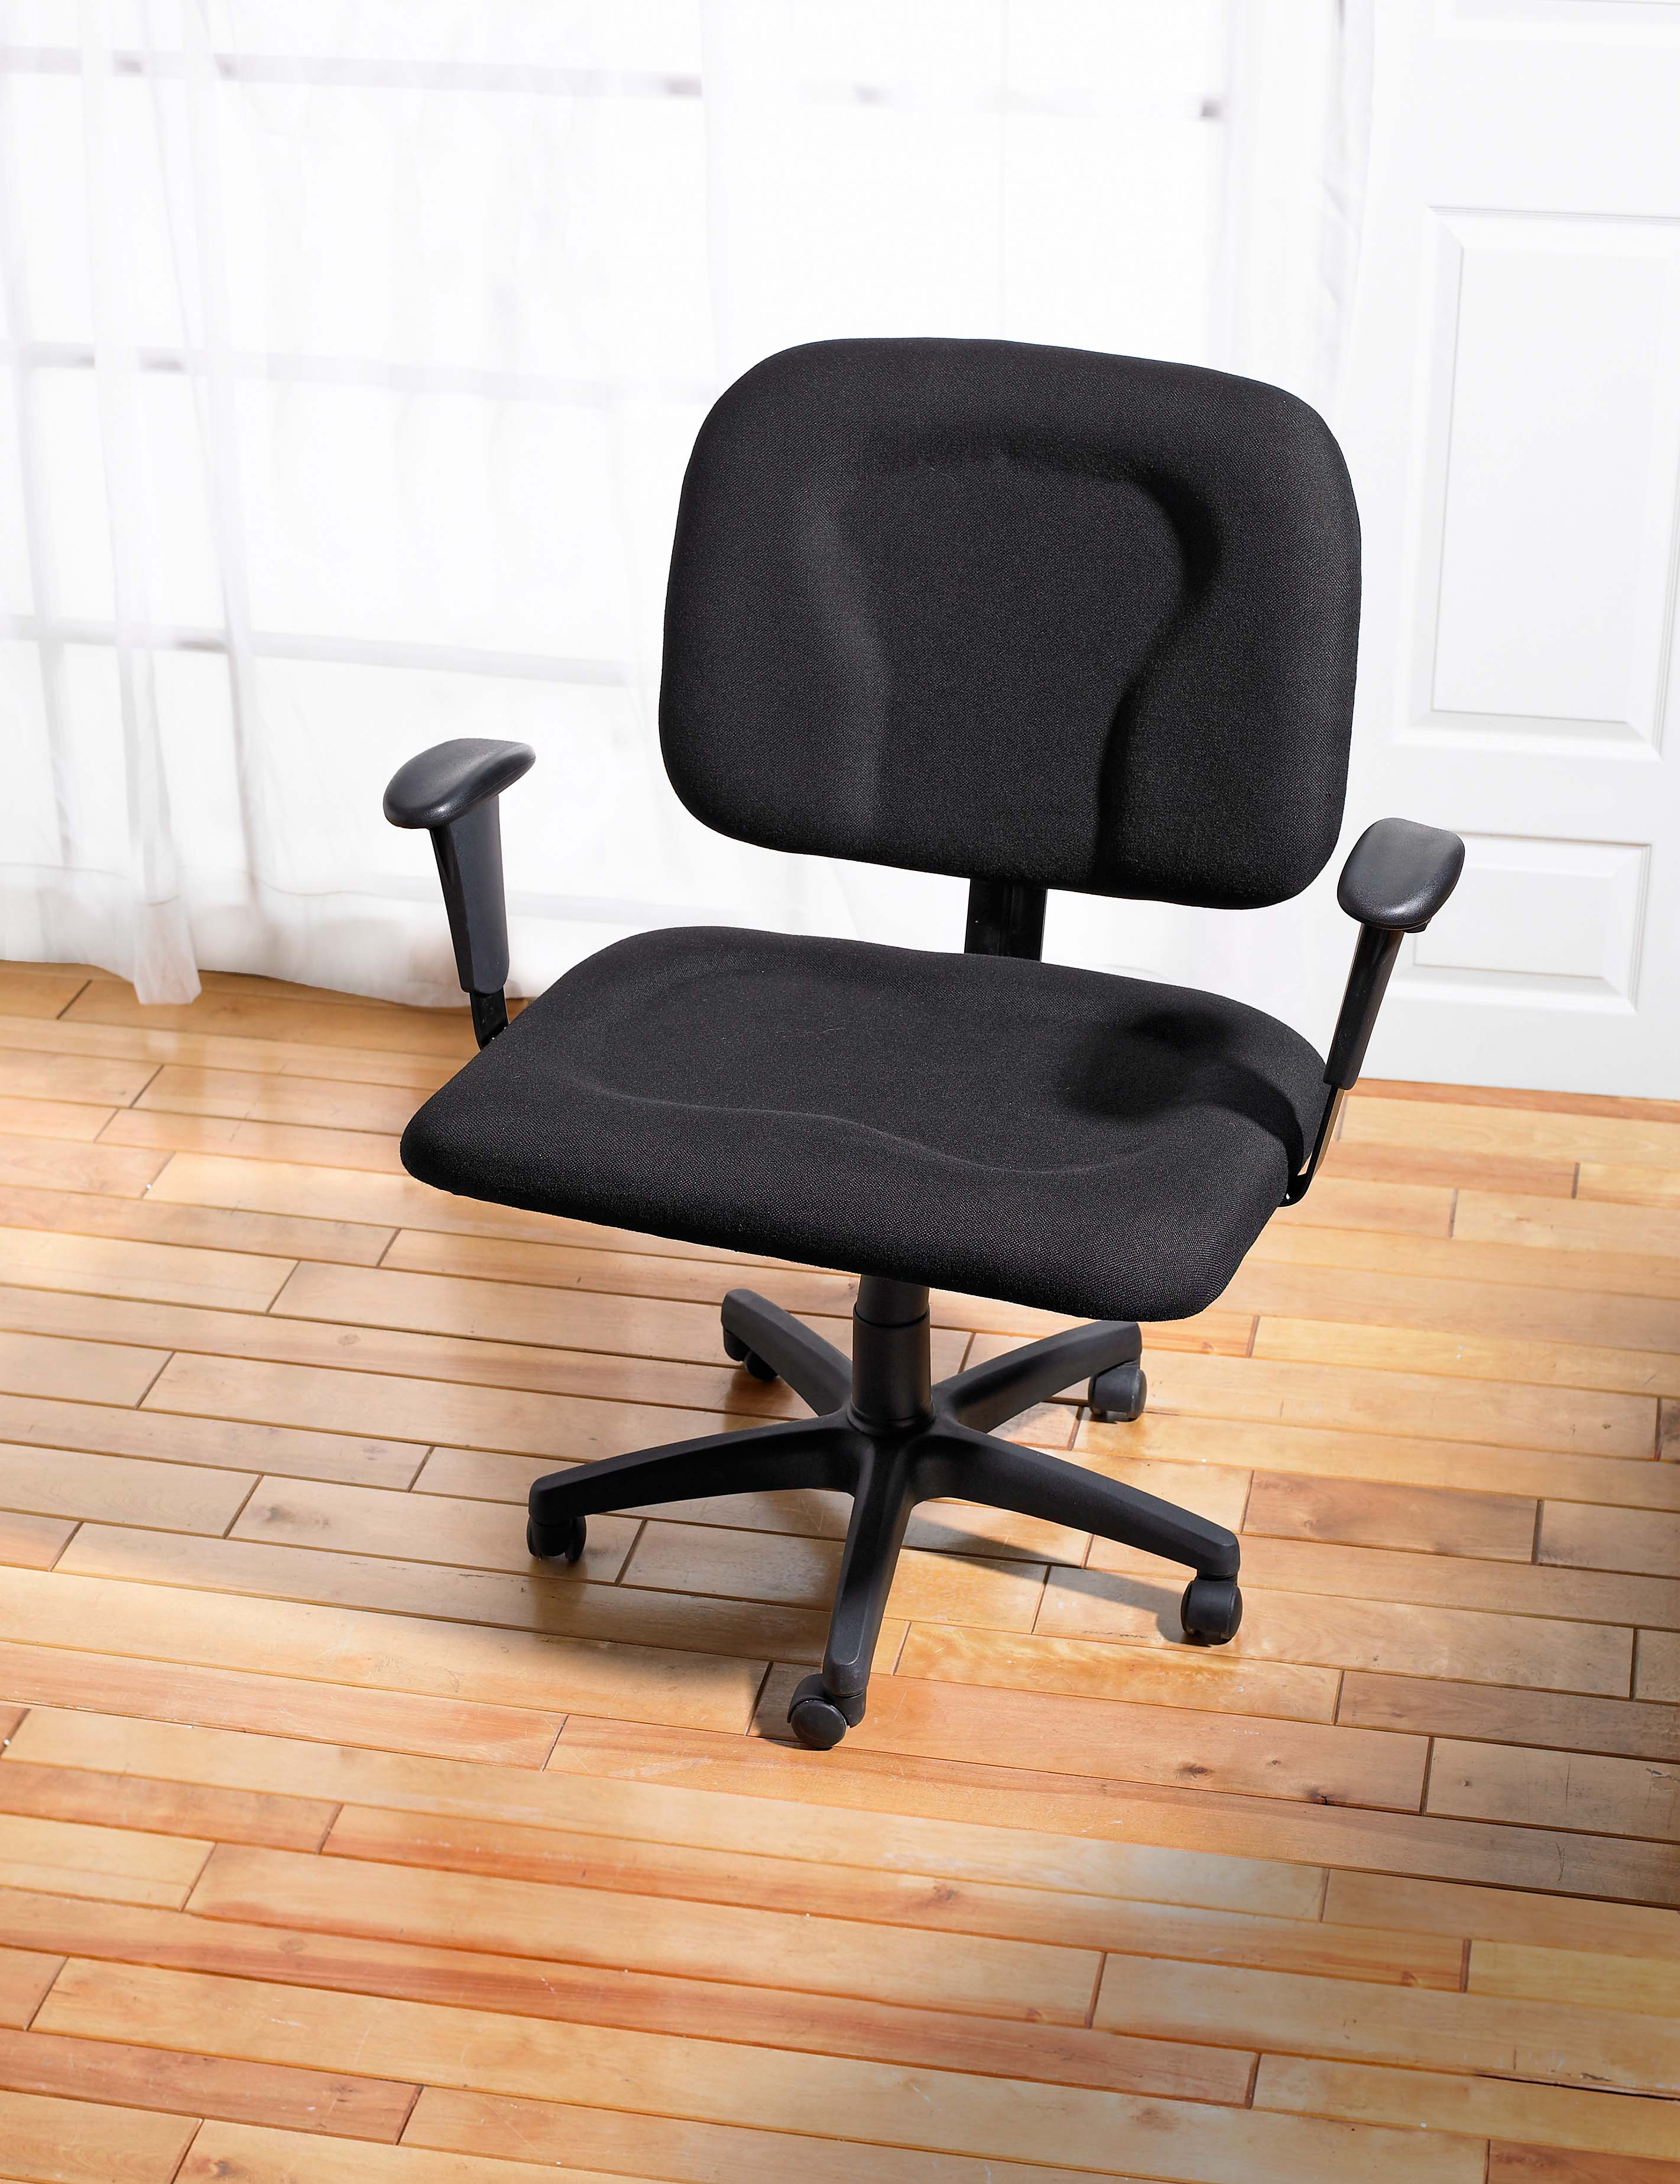 XL Computer Chair   BrylaneHome  Plus Size Living Collection. BrylaneHome   Home   Lifestyle Brand  Successfully Launches  Plus